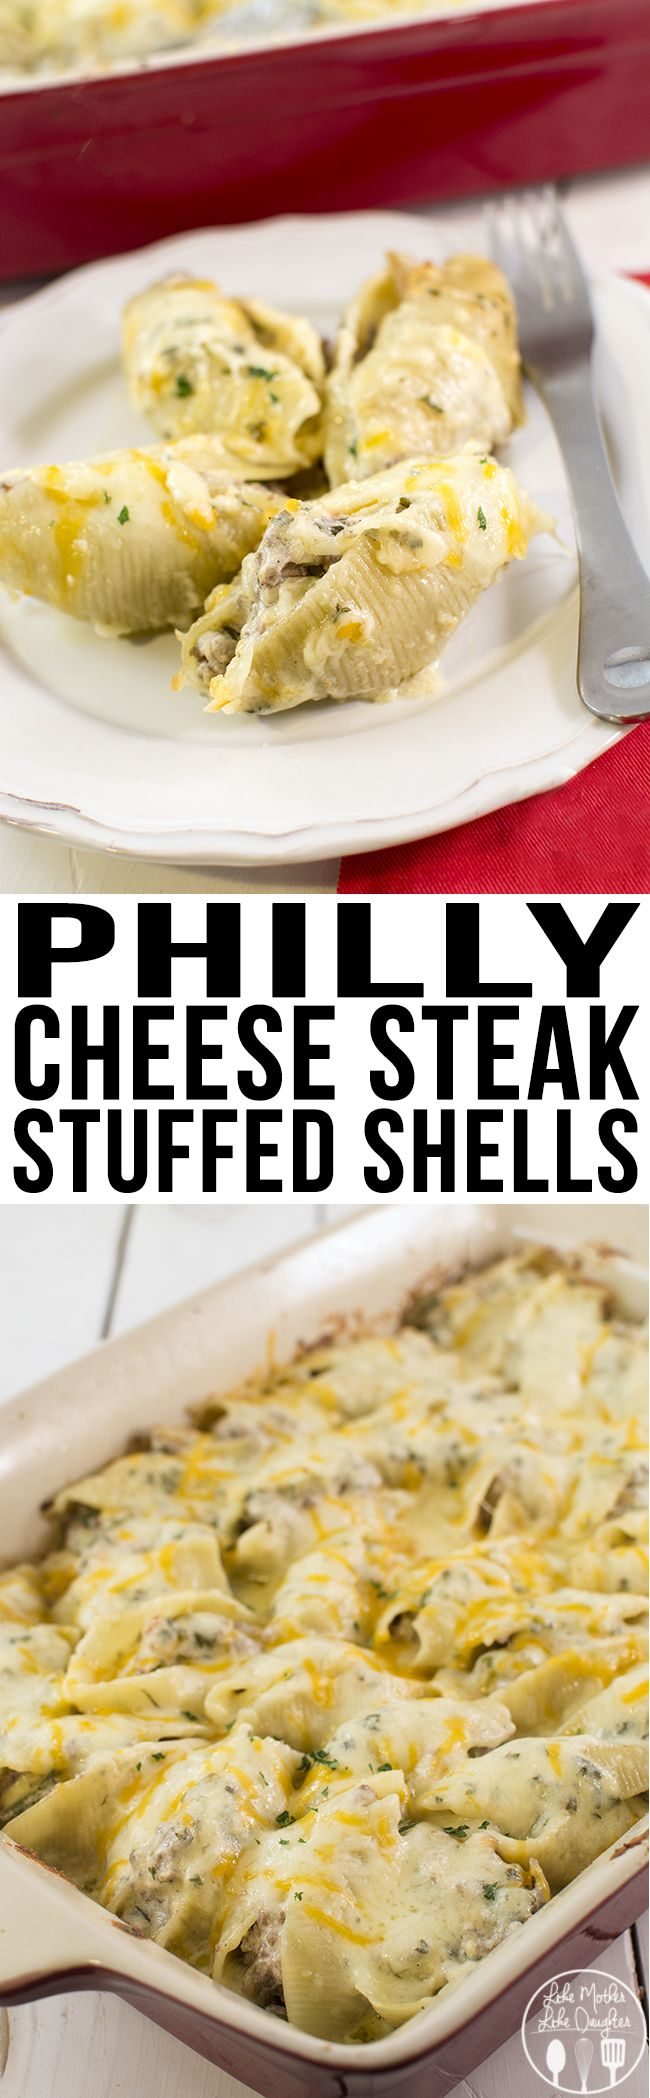 Philly Cheese Steak Stuffed Shells Like Mother Like Daughter Food Recipes Cooking